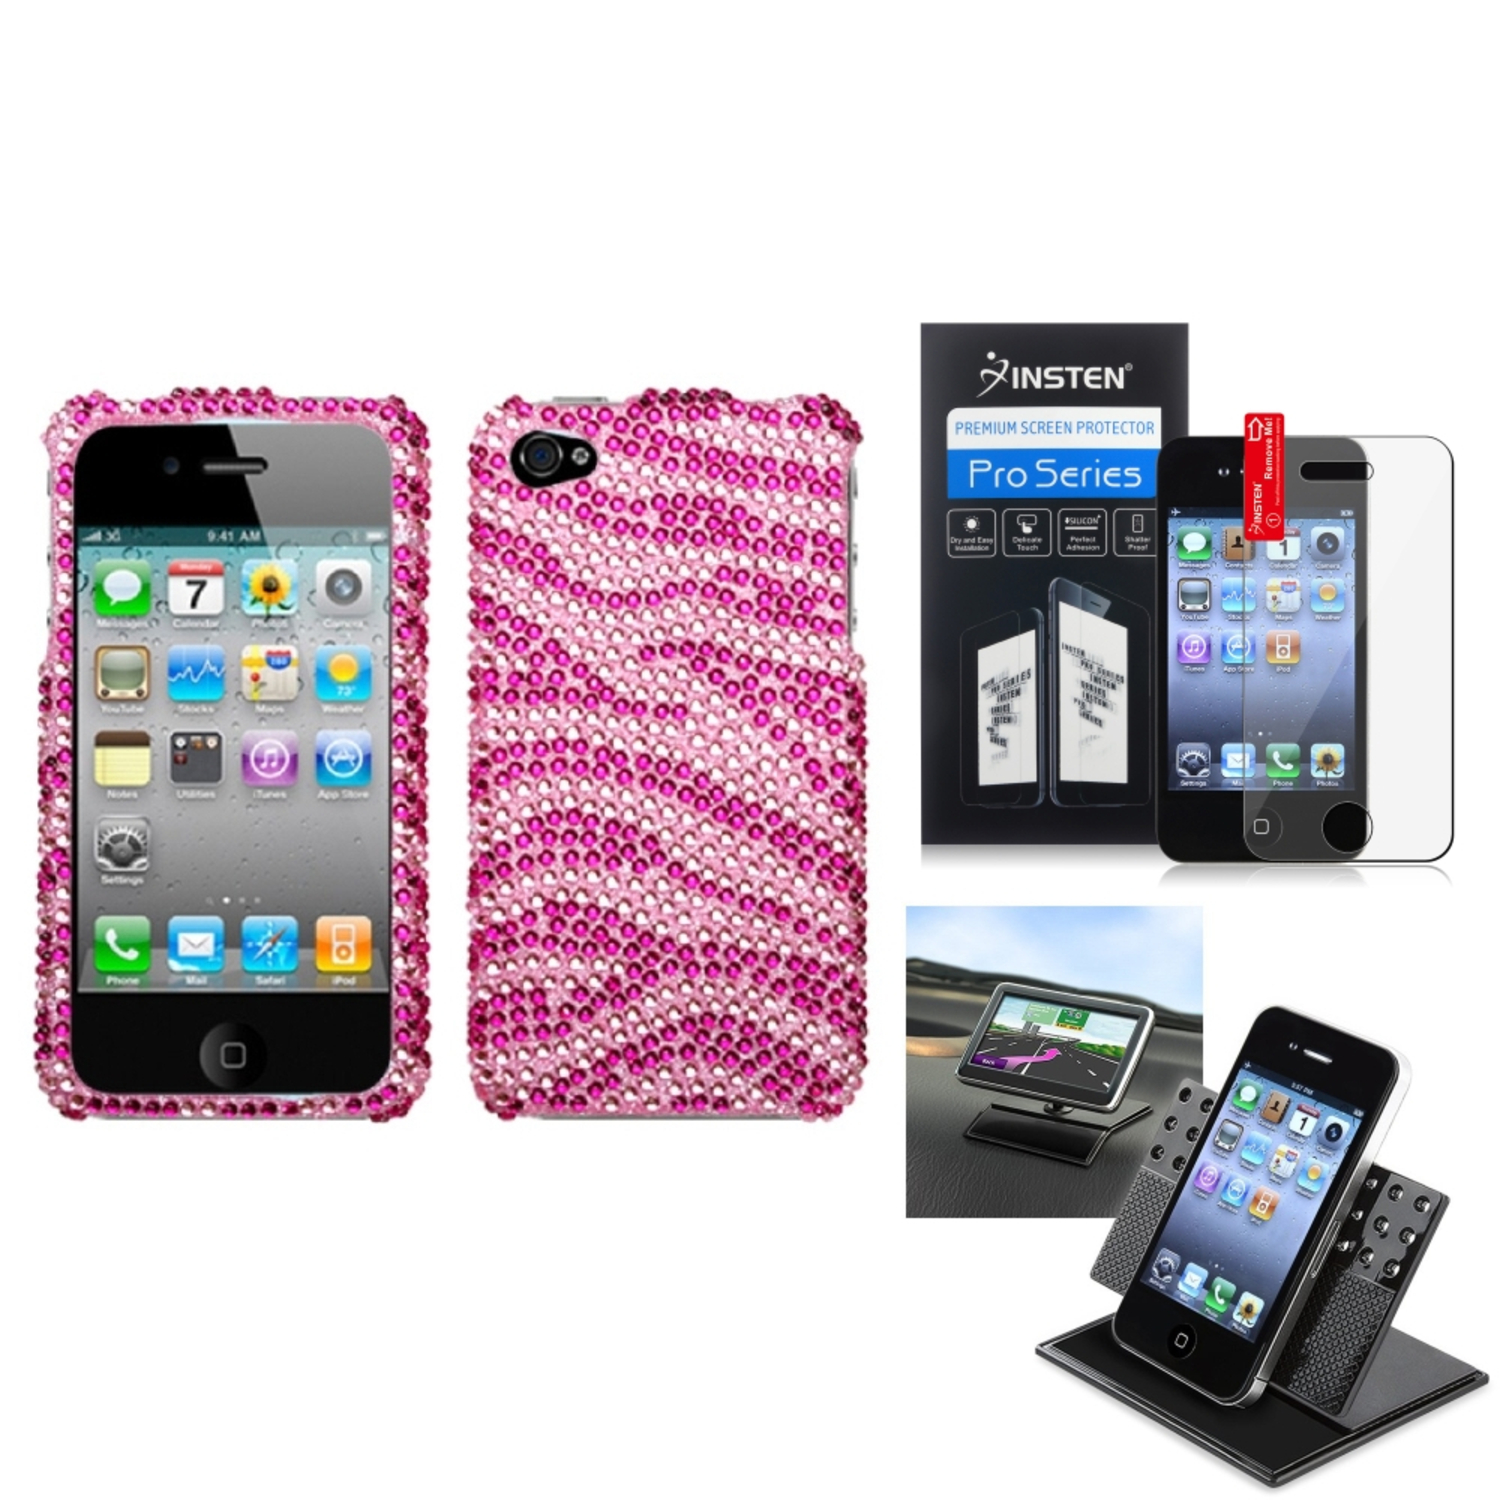 Insten Film Holder Zebra Skin (Pink/Hot Pink) Diamante Case Cover For APPLE iPhone 4S/4